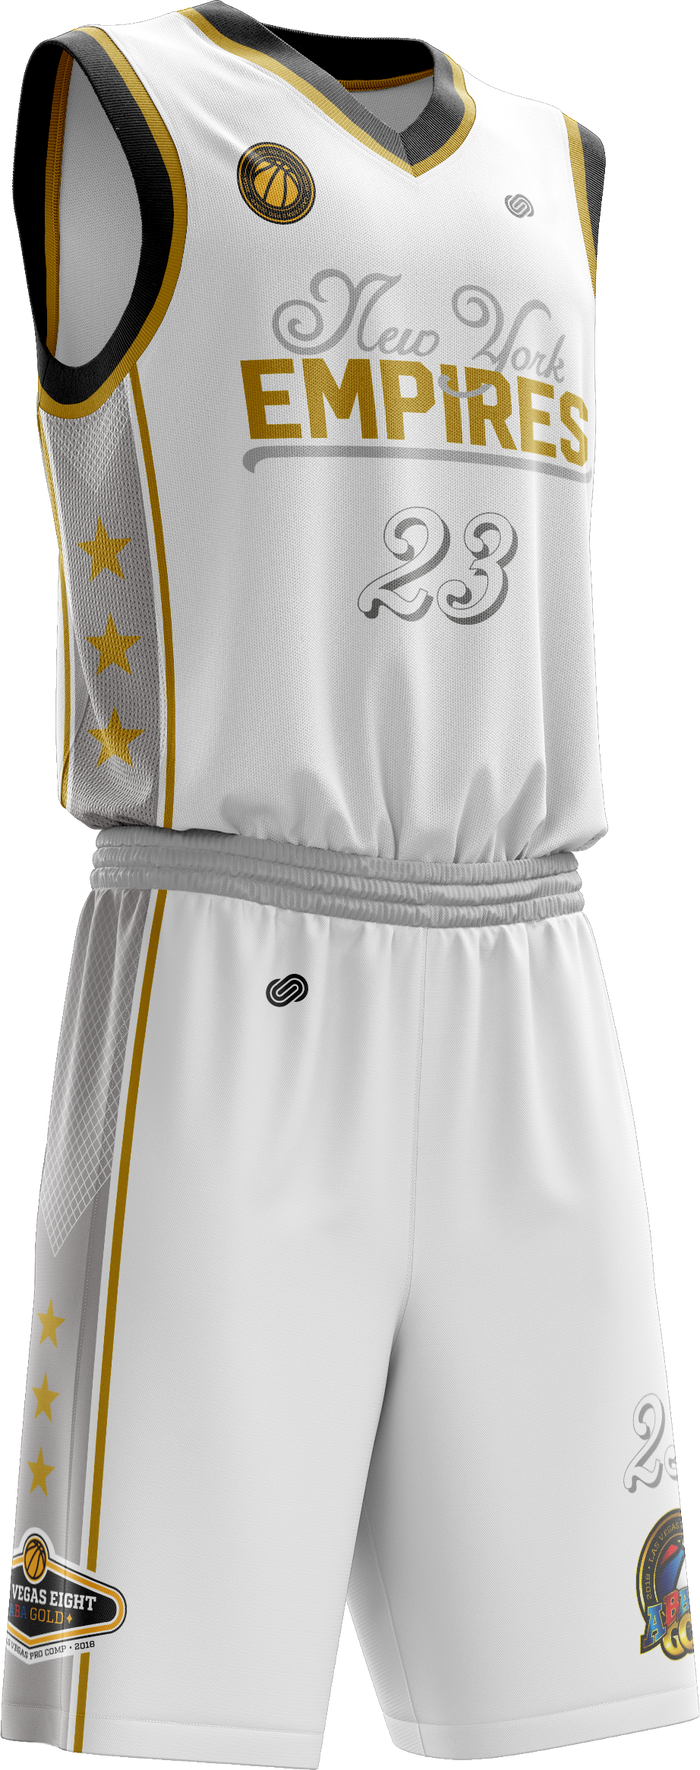 NY Empires Road Uniform